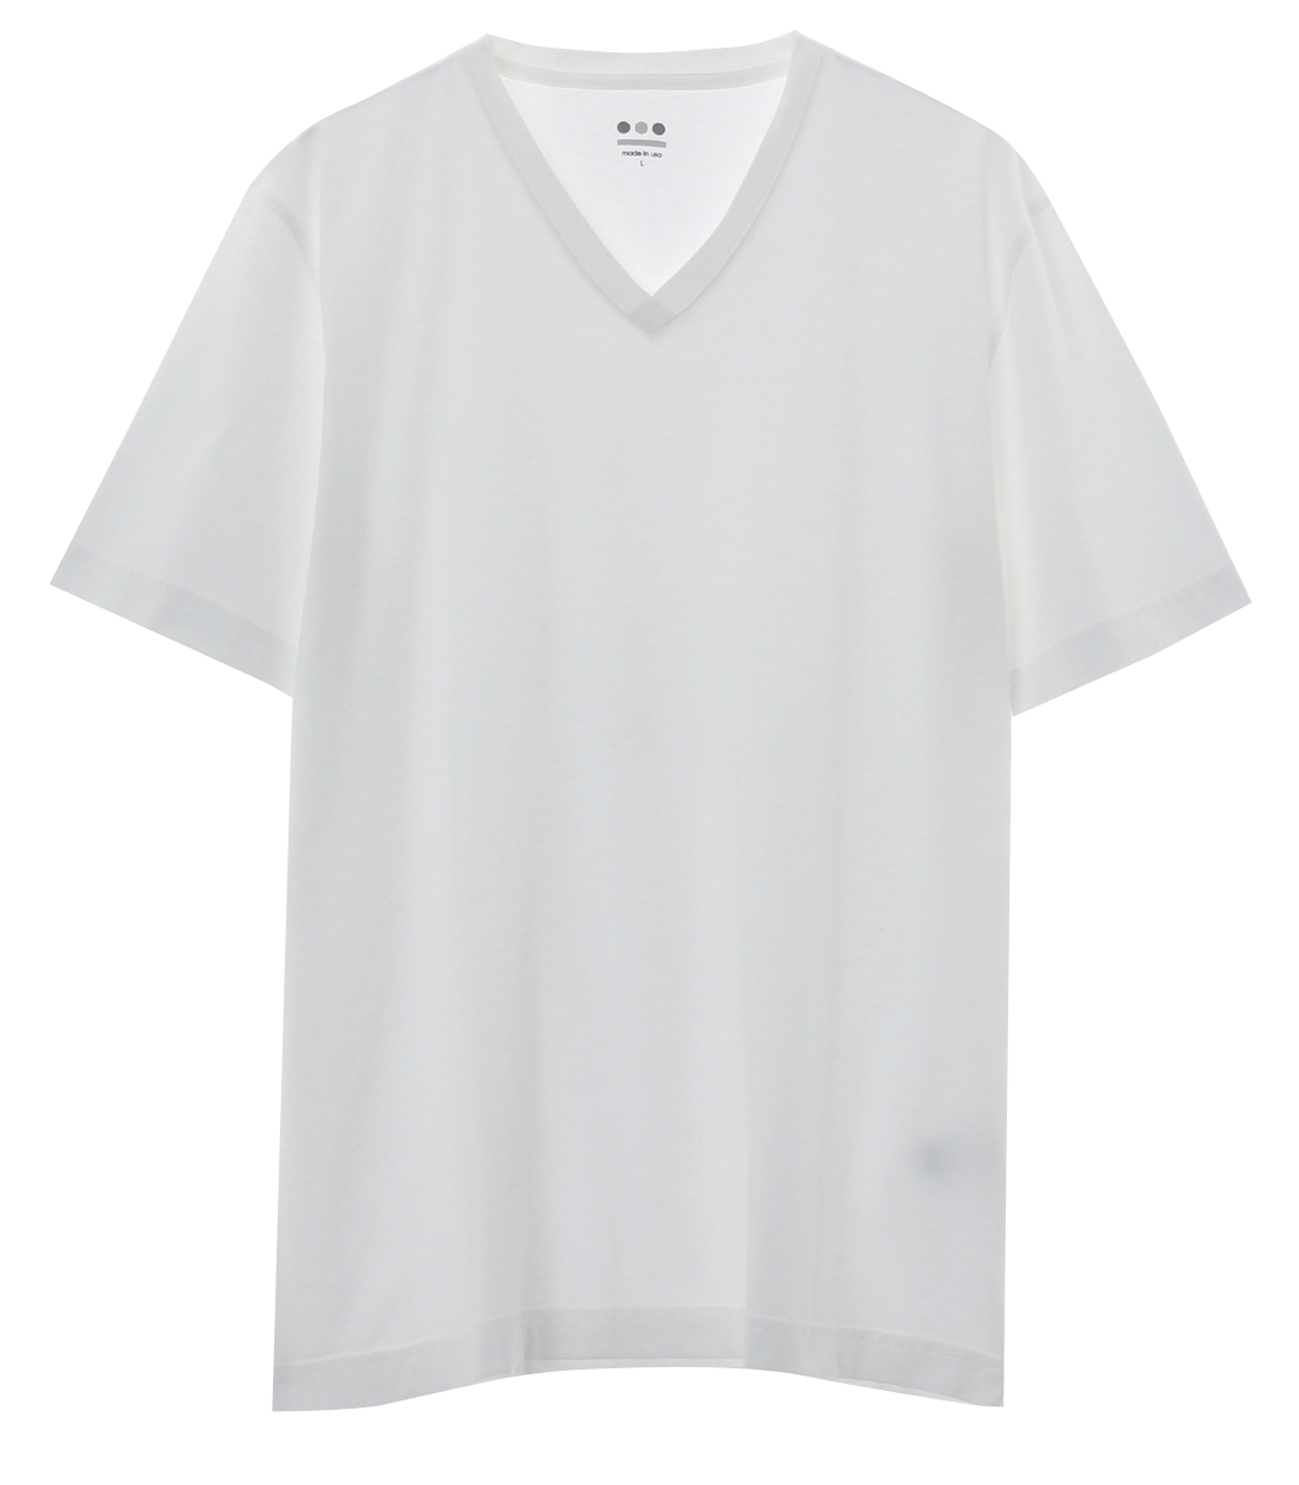 powdery cotton v-neck 詳細画像 white 1